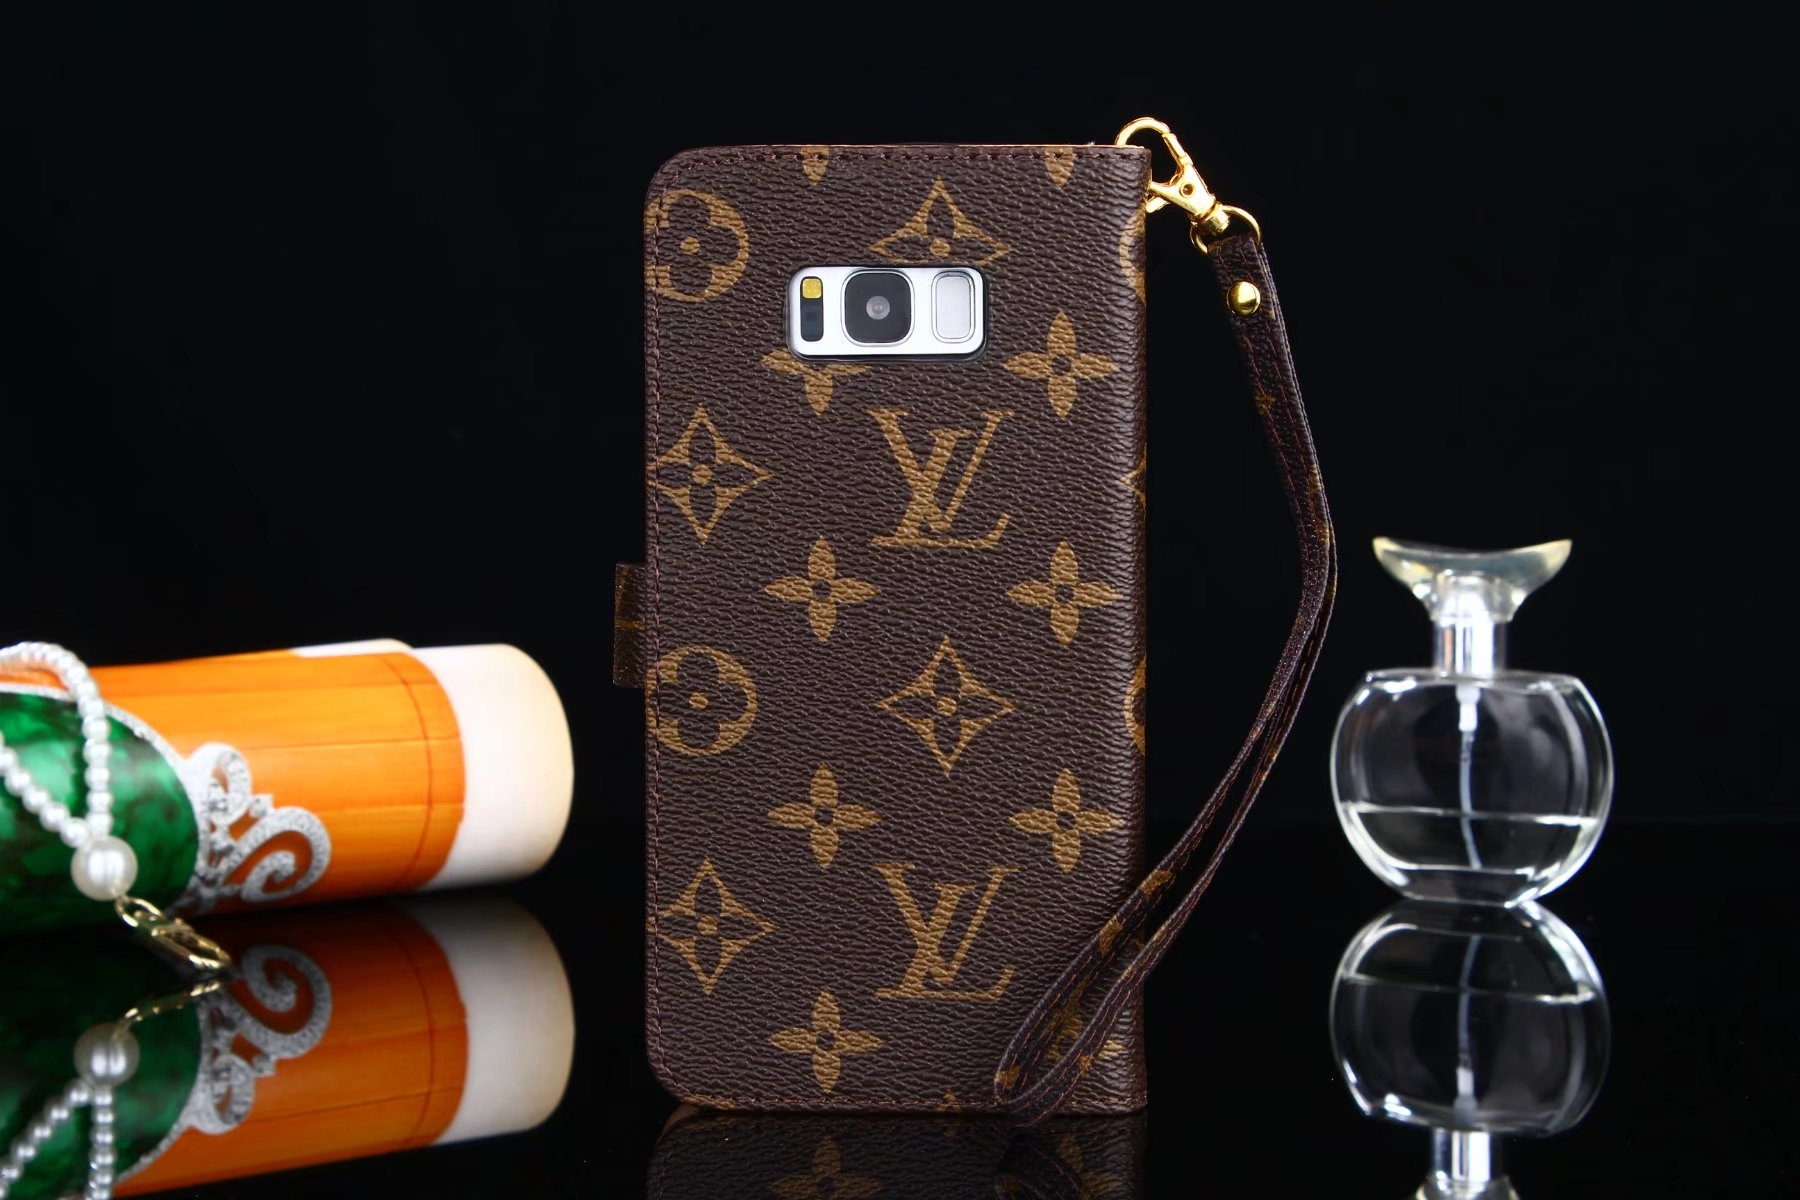 best case for S8 Plus galaxy galaxy S8 Plus phone cases Louis Vuitton Galaxy S8 Plus case s view cover for galaxy S8 Plus worst smartphones flip case for samsung galaxy S8 Plus samsung galaxy samsung galaxy S8 Plus samsung galaxy cover galaxy S8 Plus folio